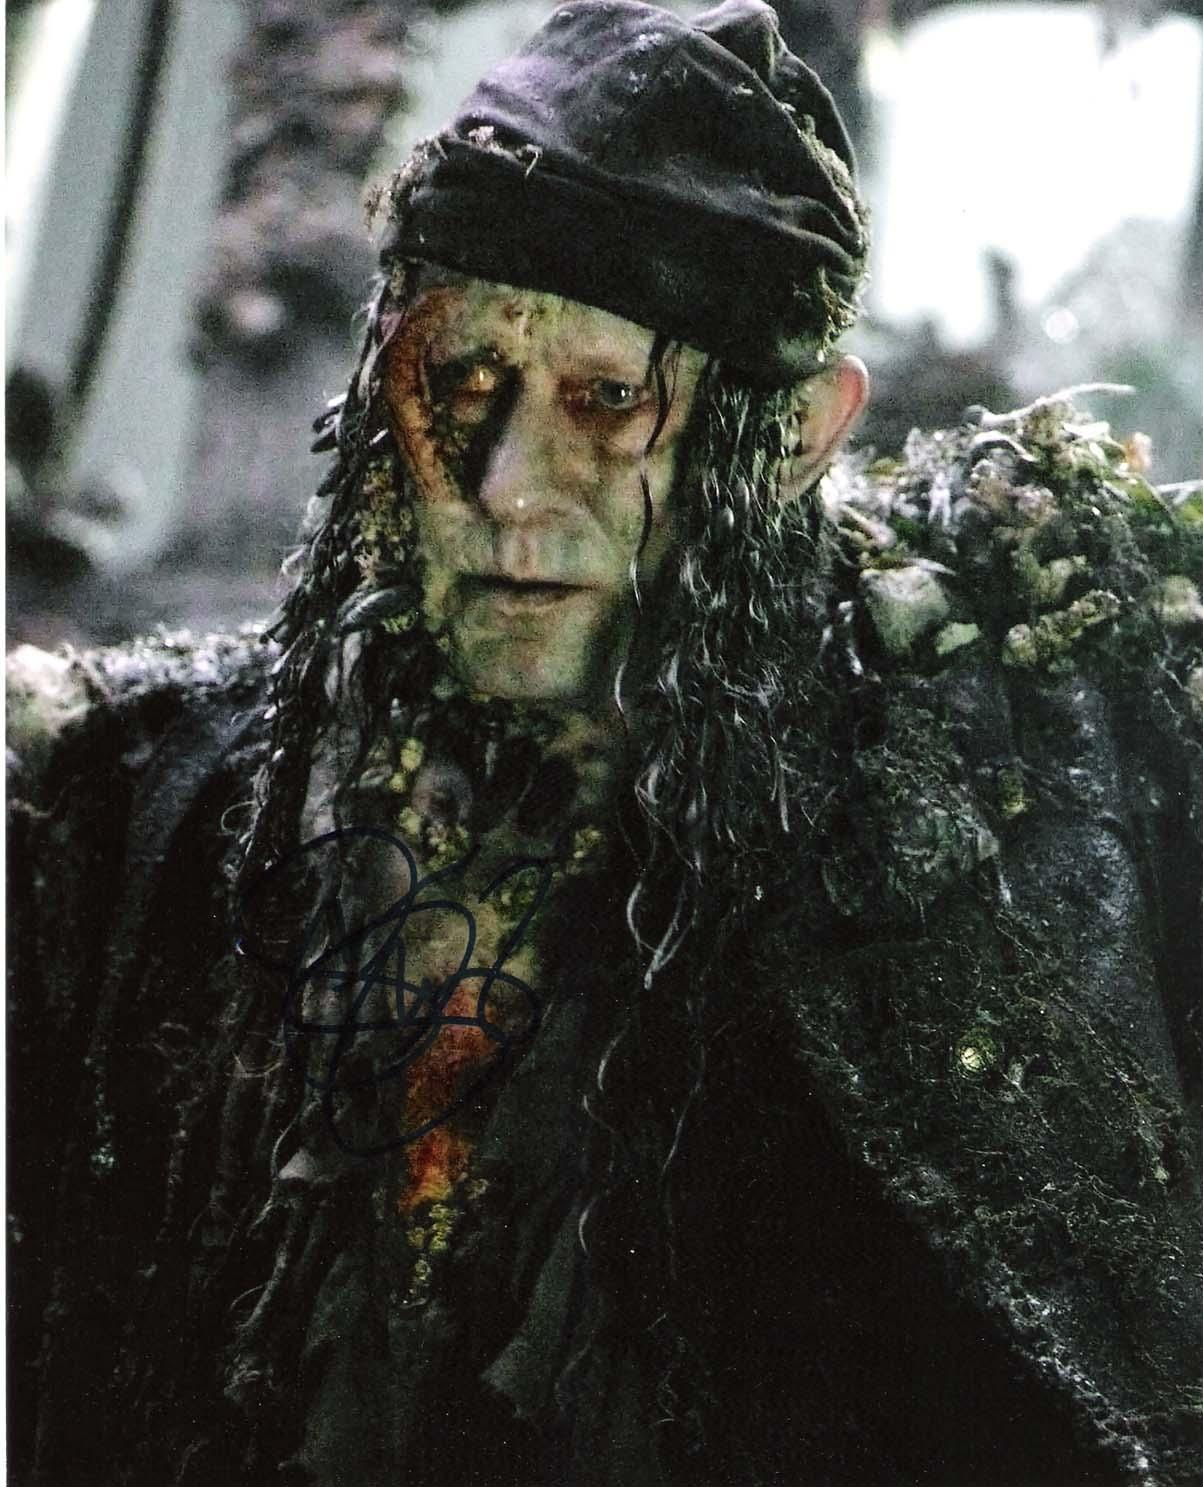 """STELLAN SKARSGARD """"PIRATES of the CARIBBEAN"""" as BOOTSTRAP BILL-Signed 8x10 Color Photo"""